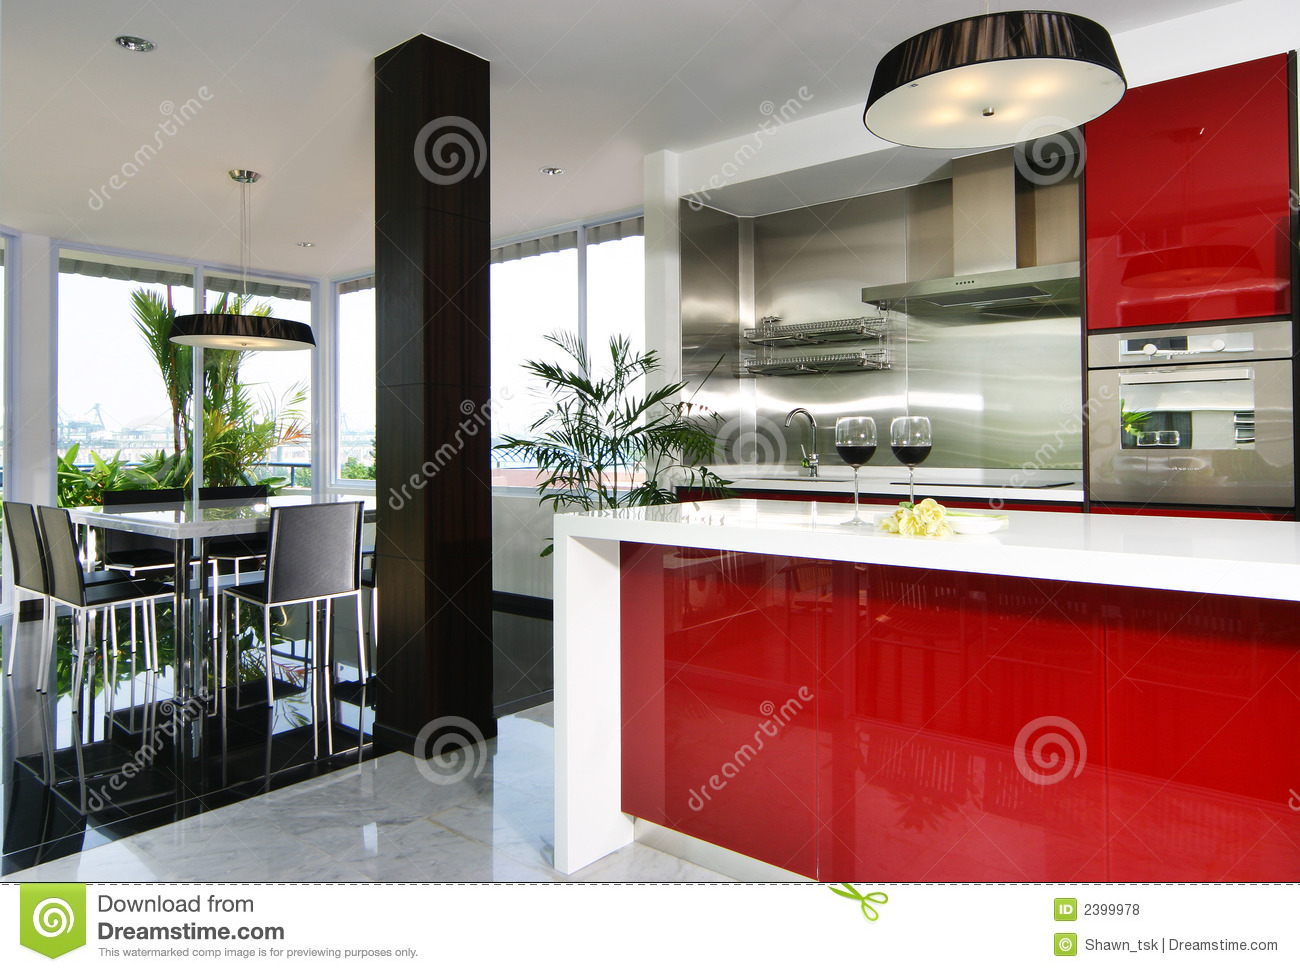 Interior Design - Kitchen Royalty Free Stock Photos - Image: 2399978